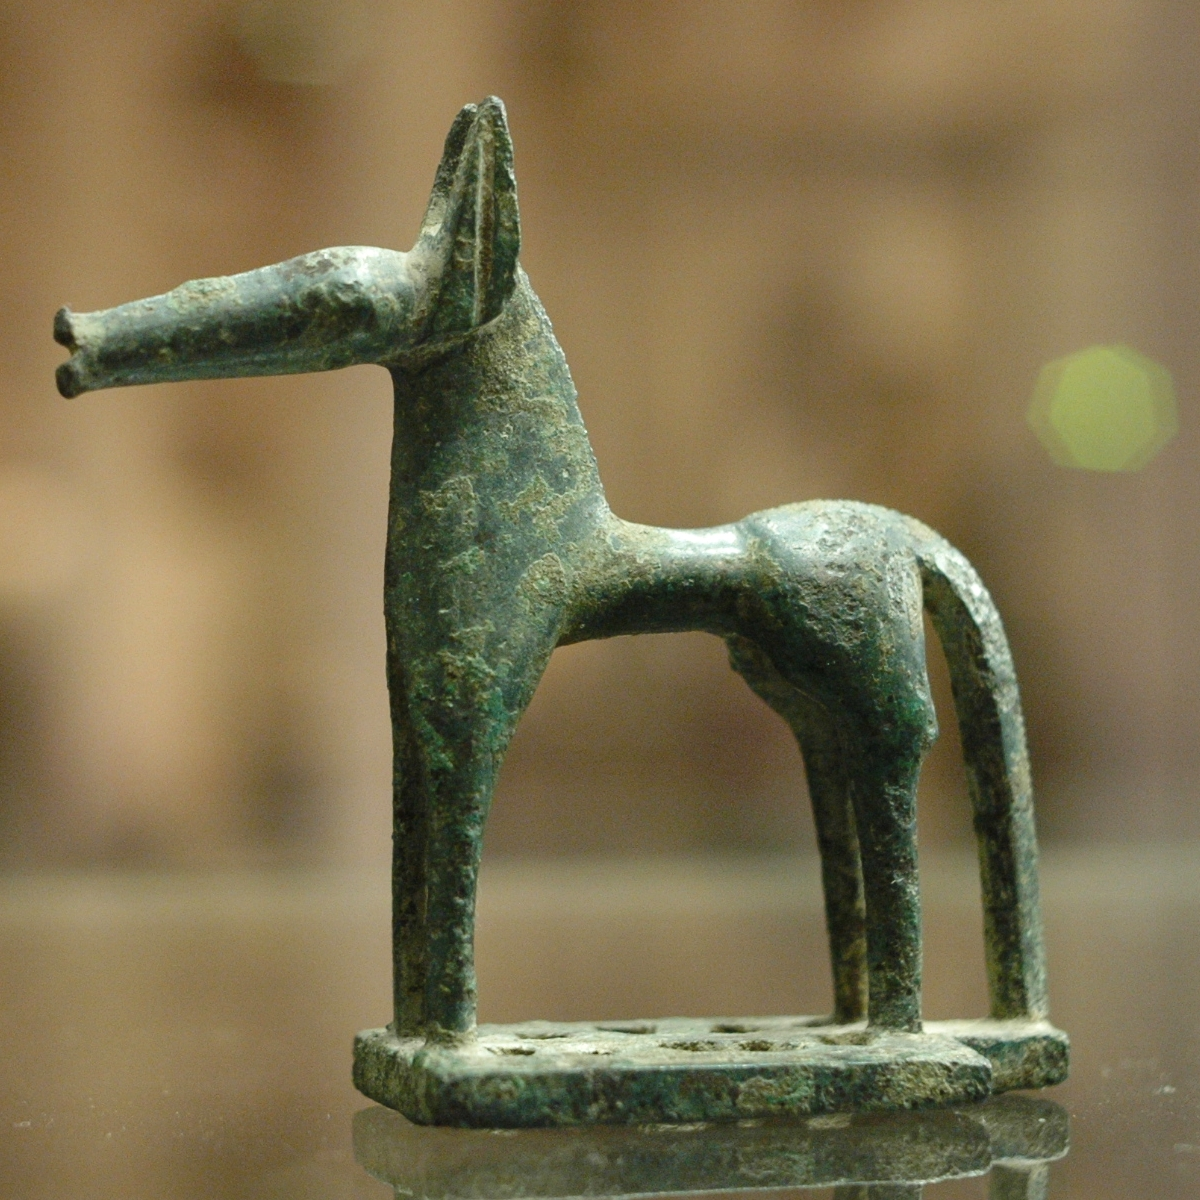 http://upload.wikimedia.org/wikipedia/commons/8/8a/Bronze_horse_Louvre_Br90.jpg